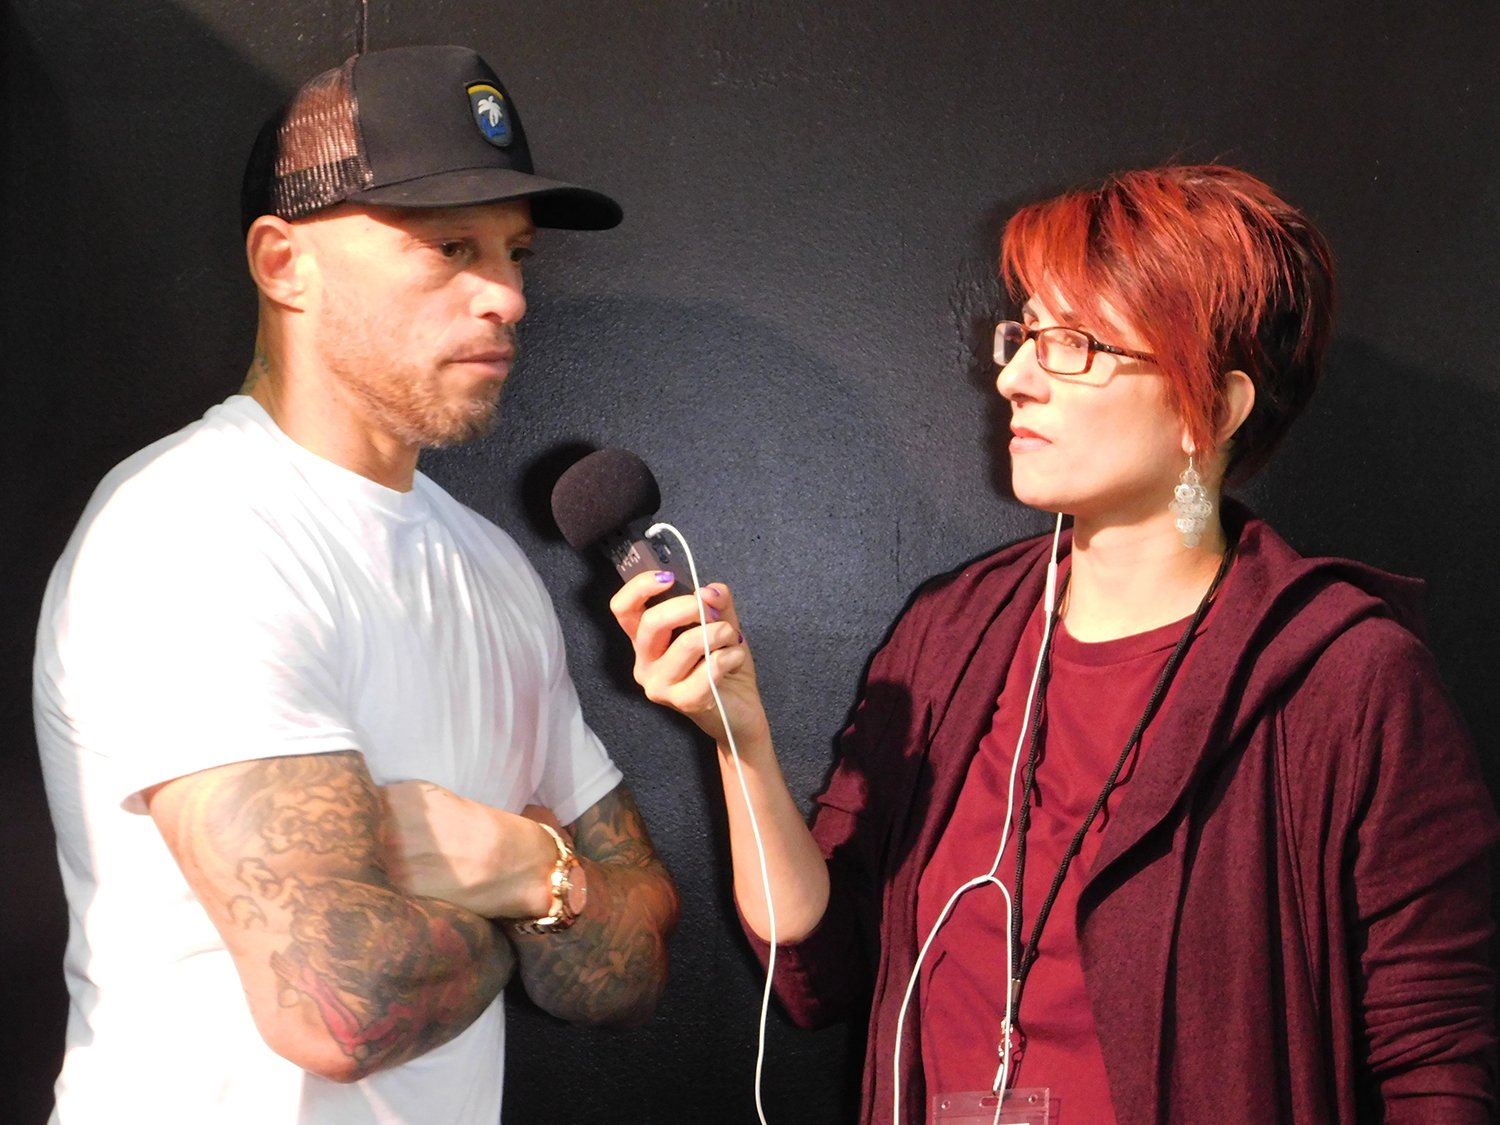 ami james interviewed by scene360, adriana de barros